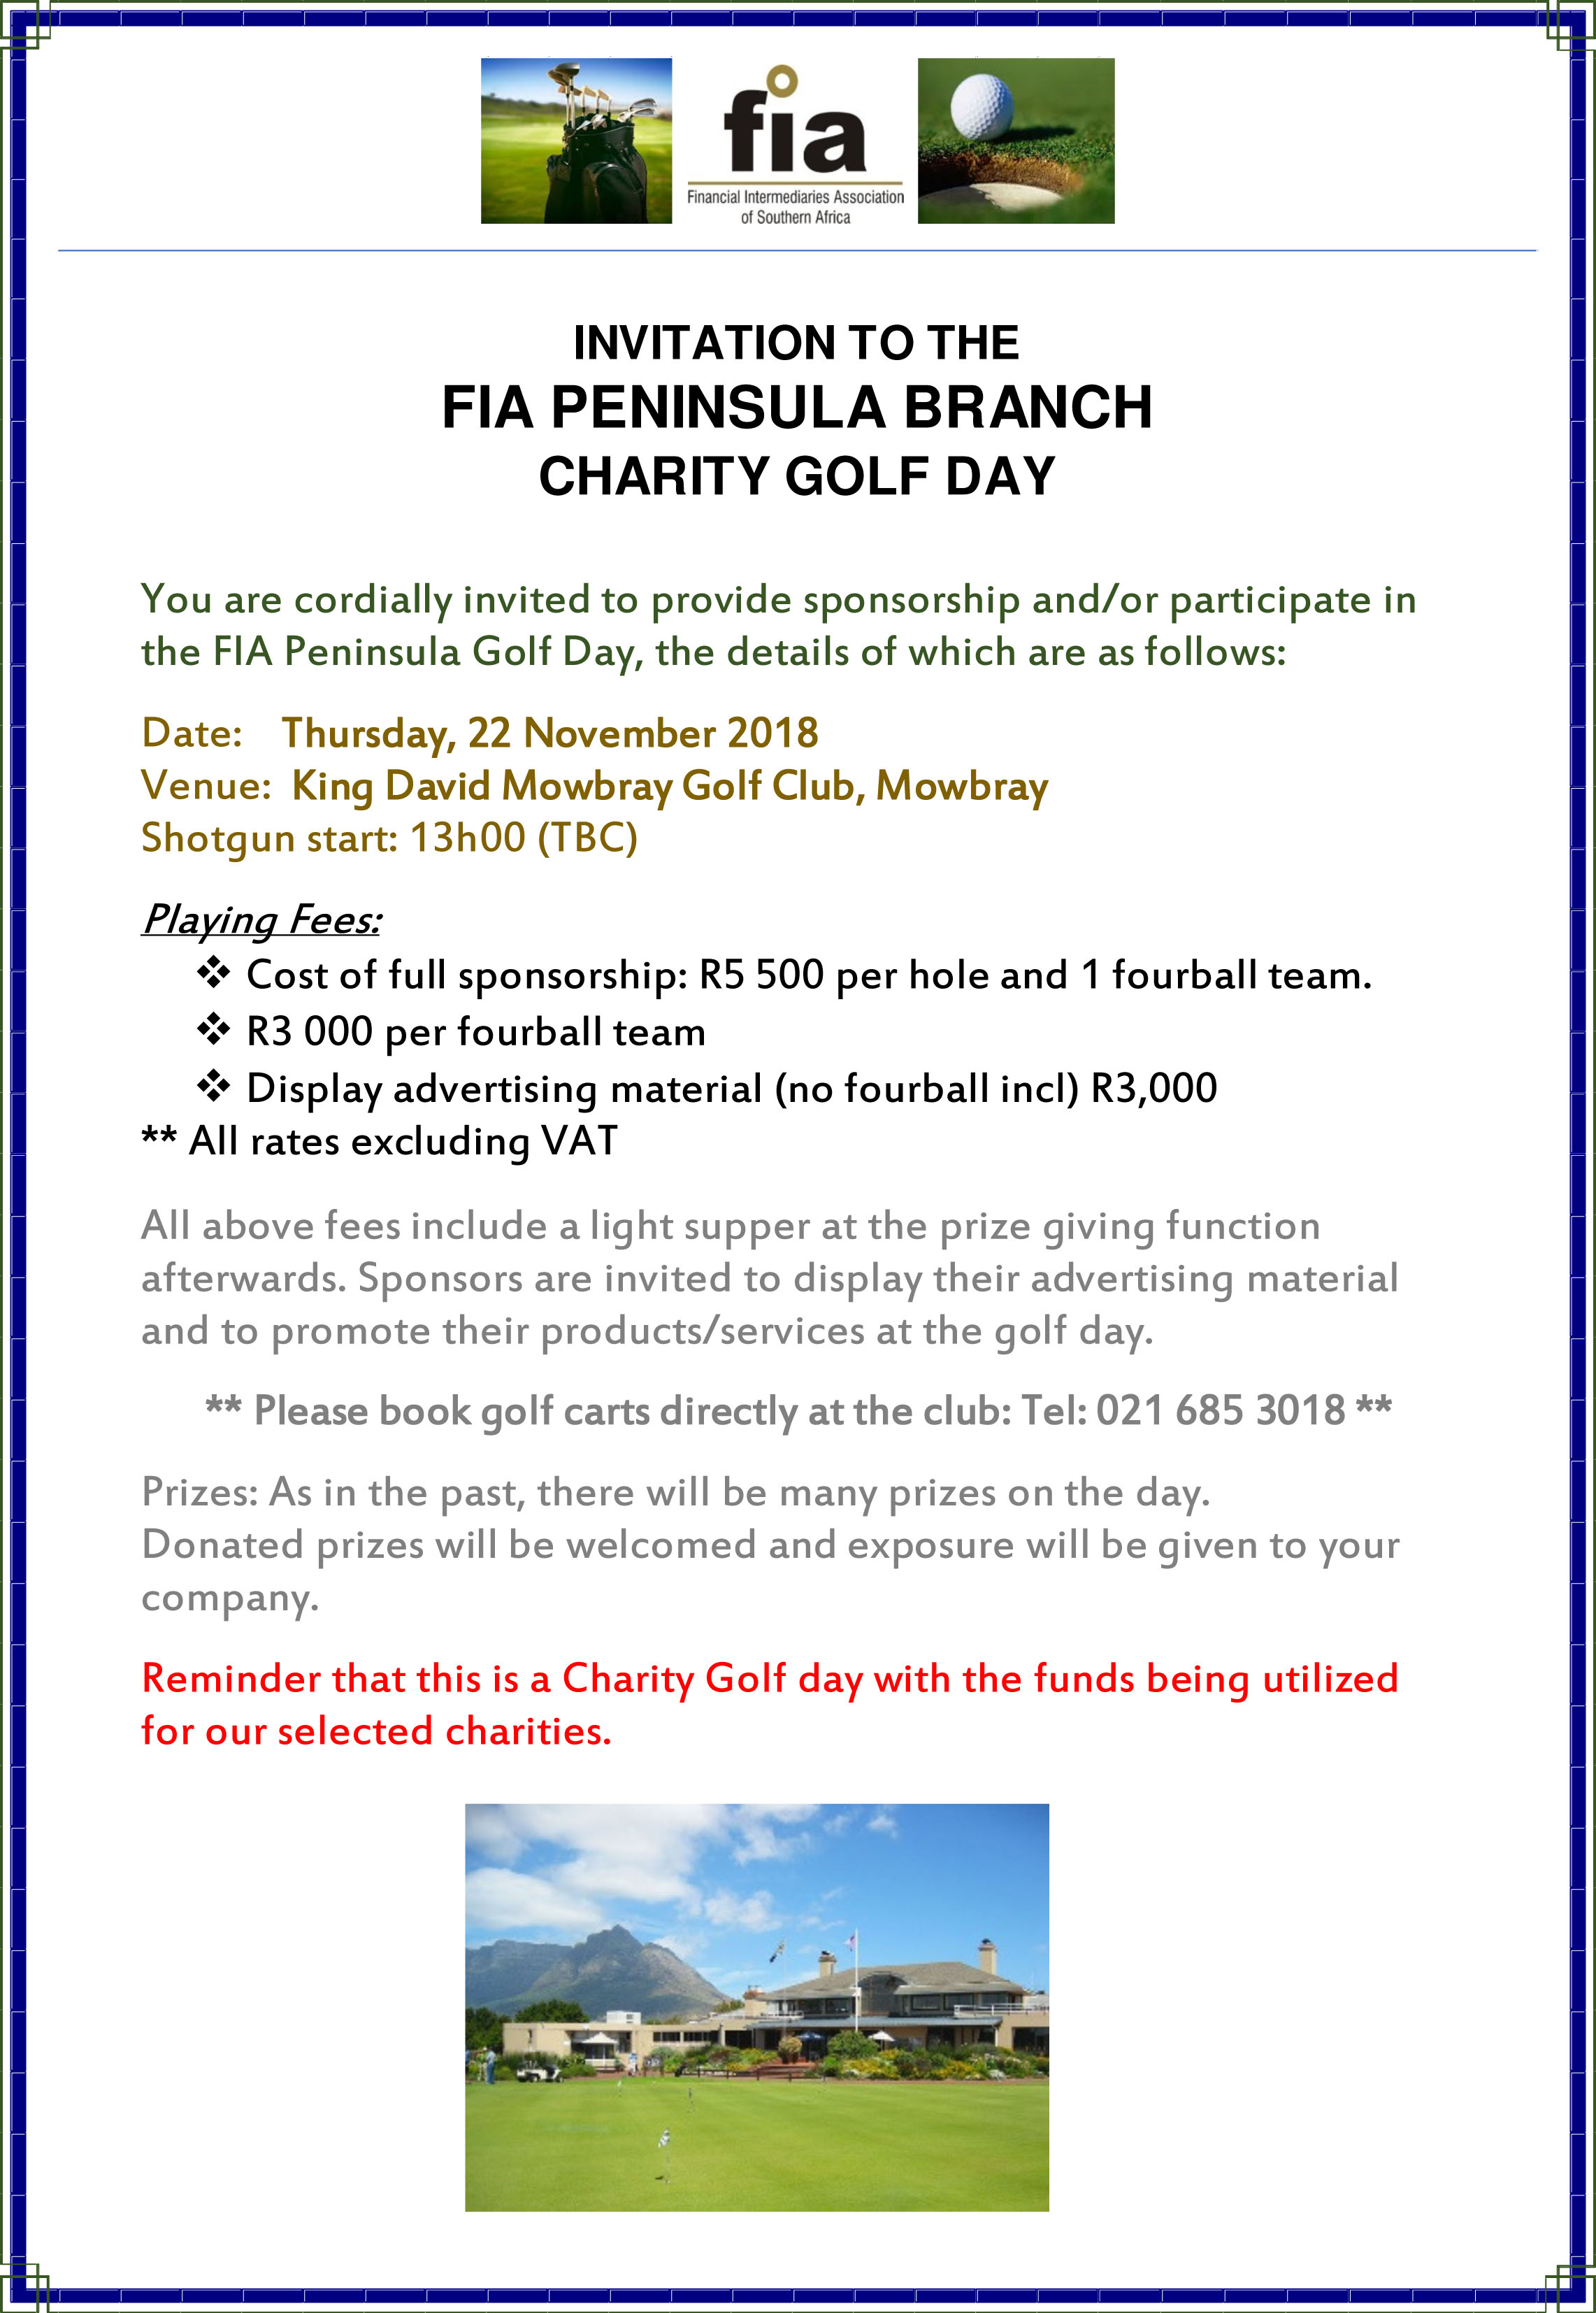 FIA Peninsula Branch Charity Golf Day